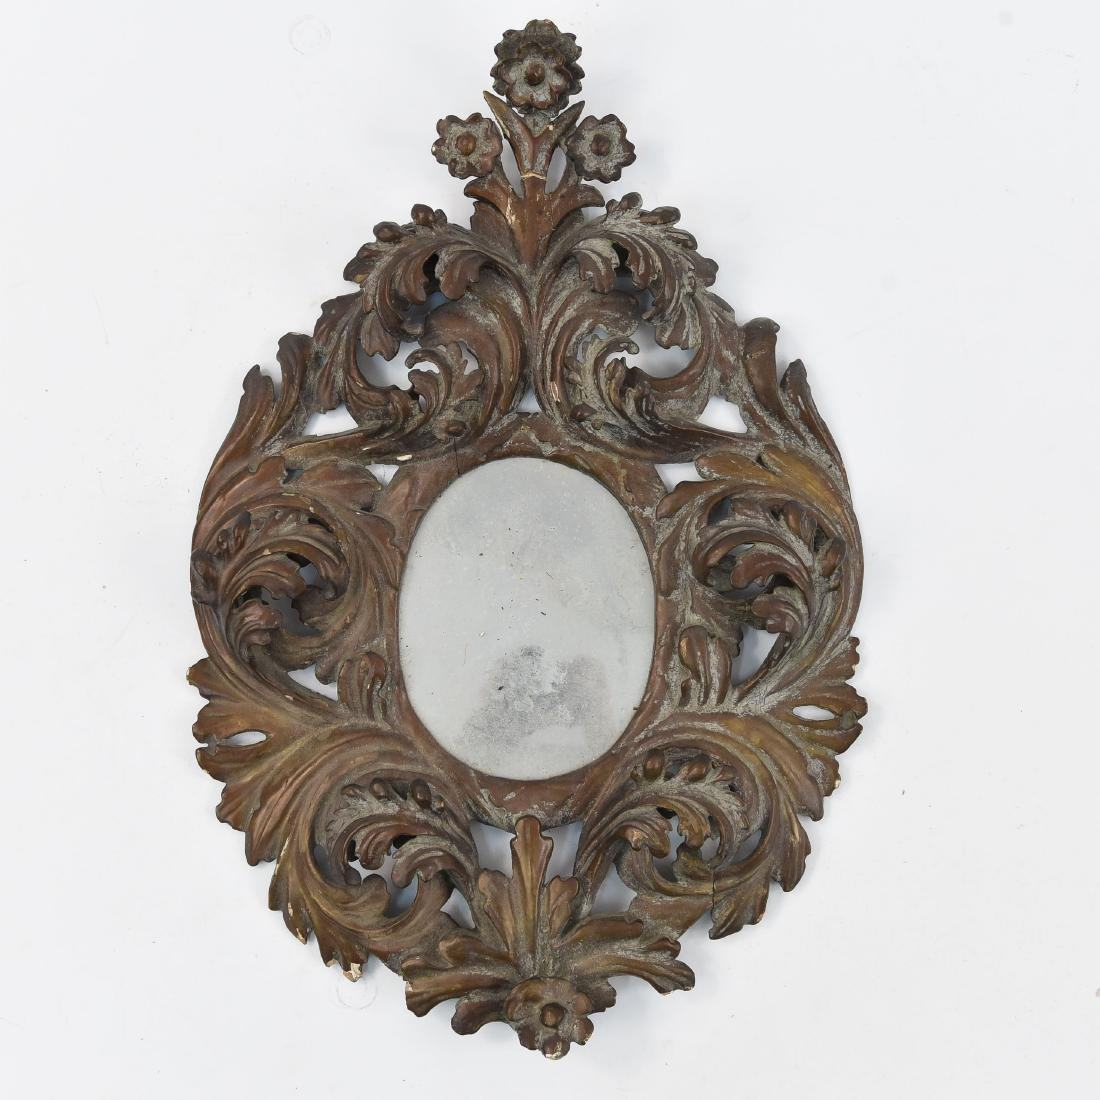 19TH C. ITALIAN ORNATE CARVED MIRROR